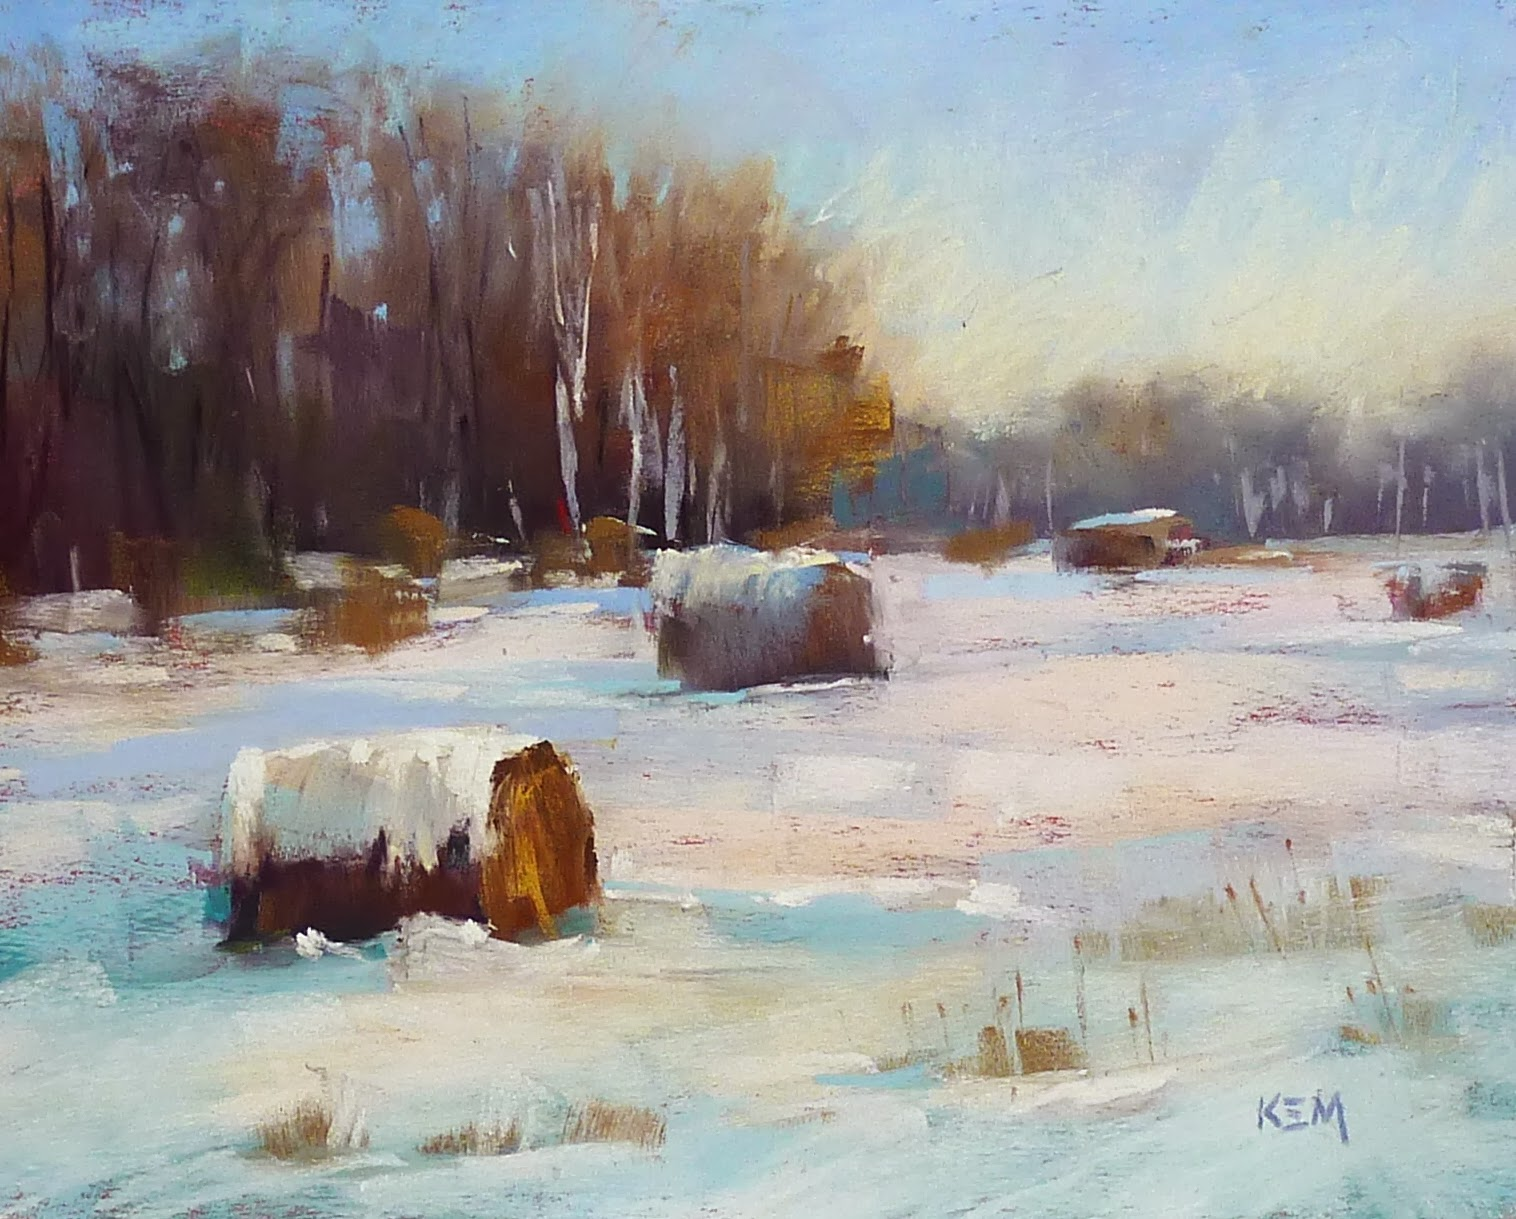 Painting My World How To Paint A Winter LandscapeNew Pastel